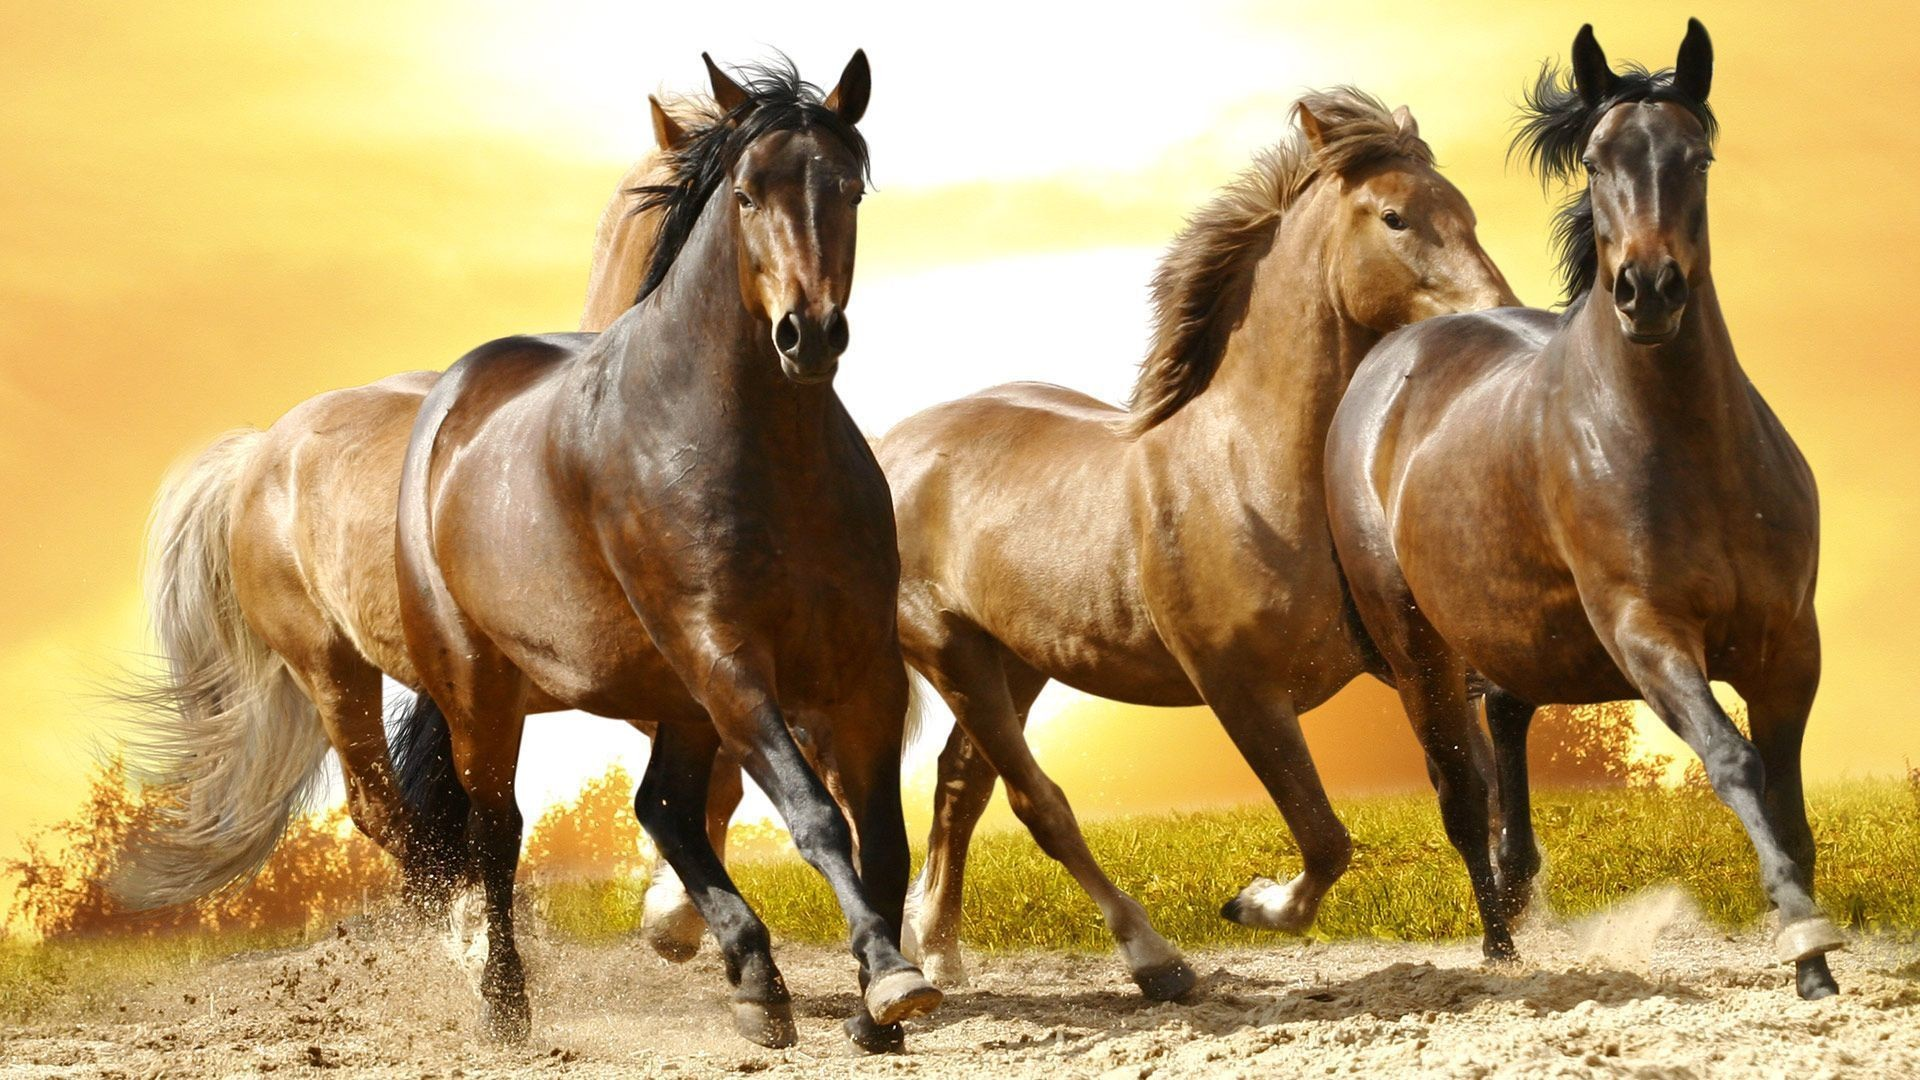 Free Download 57 Beautiful Horse Wallpapers On Wallpaperplay